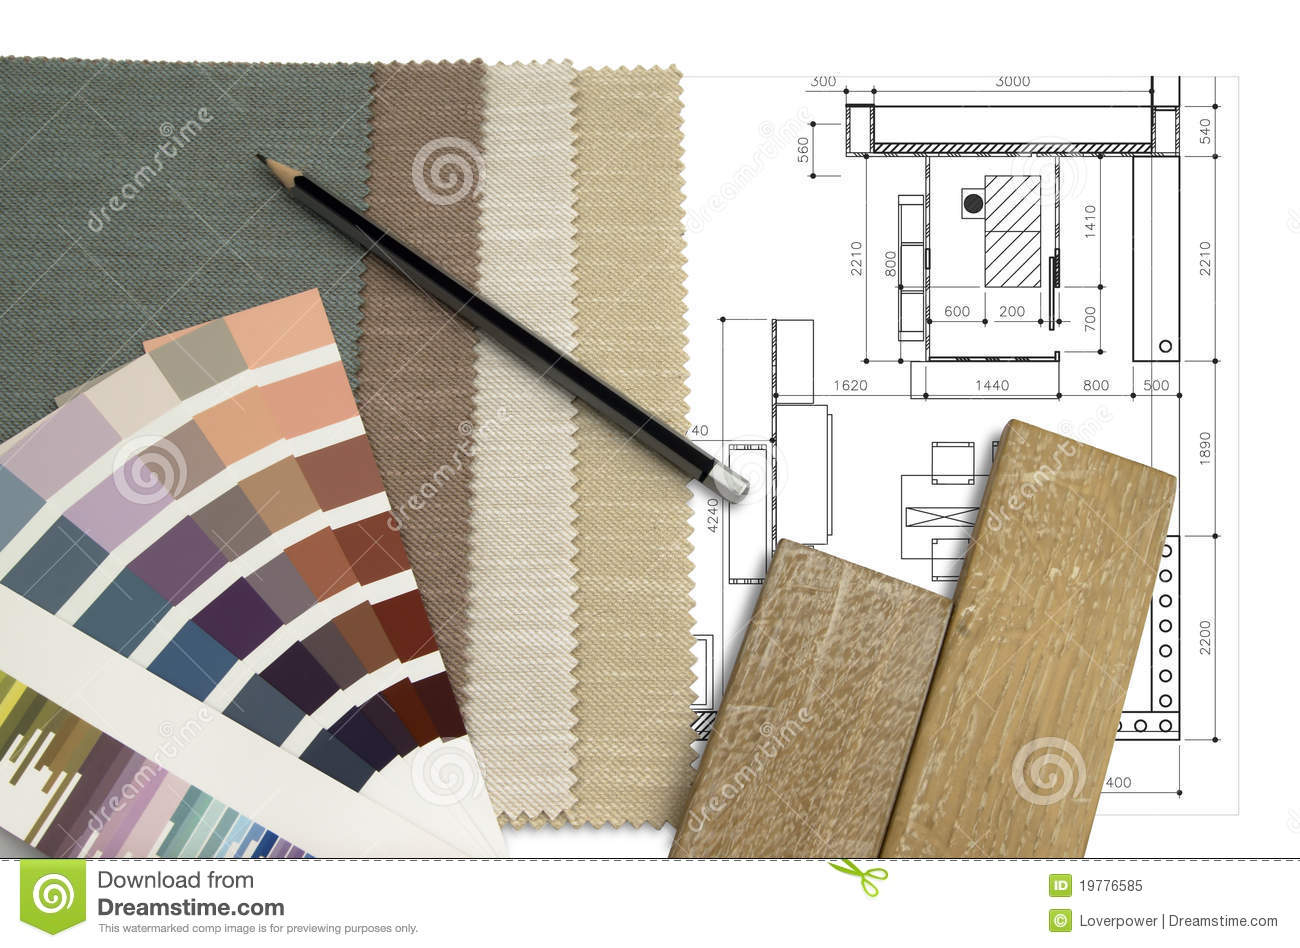 Worktable interior design stock image image of design 19776585 Free interior design